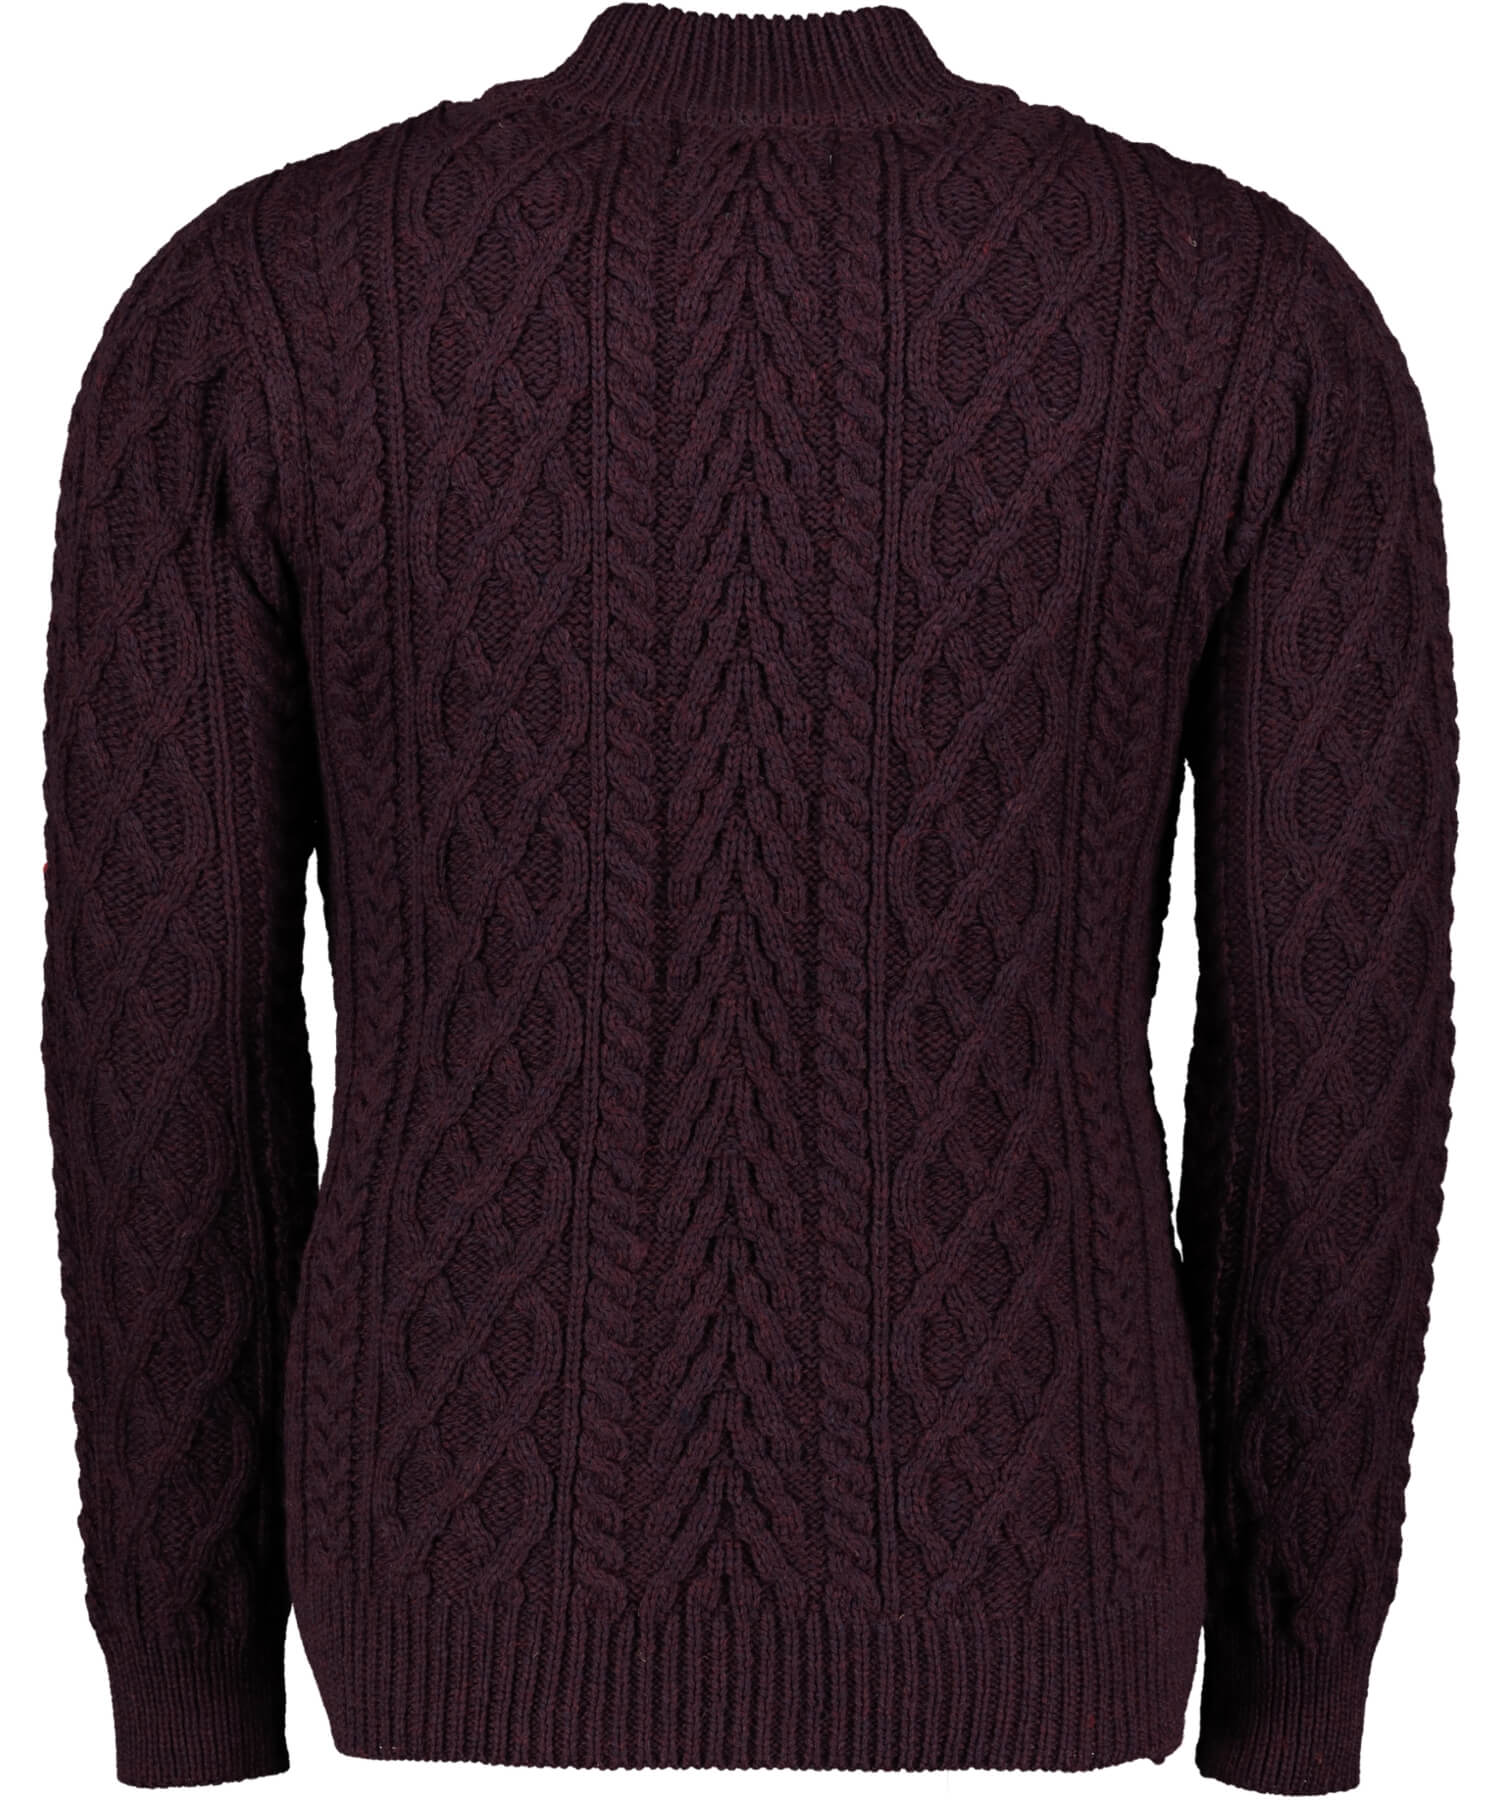 Donegal Half Zip Sweater - Damson Aran Crafts Mens Sweaters & Cardigans